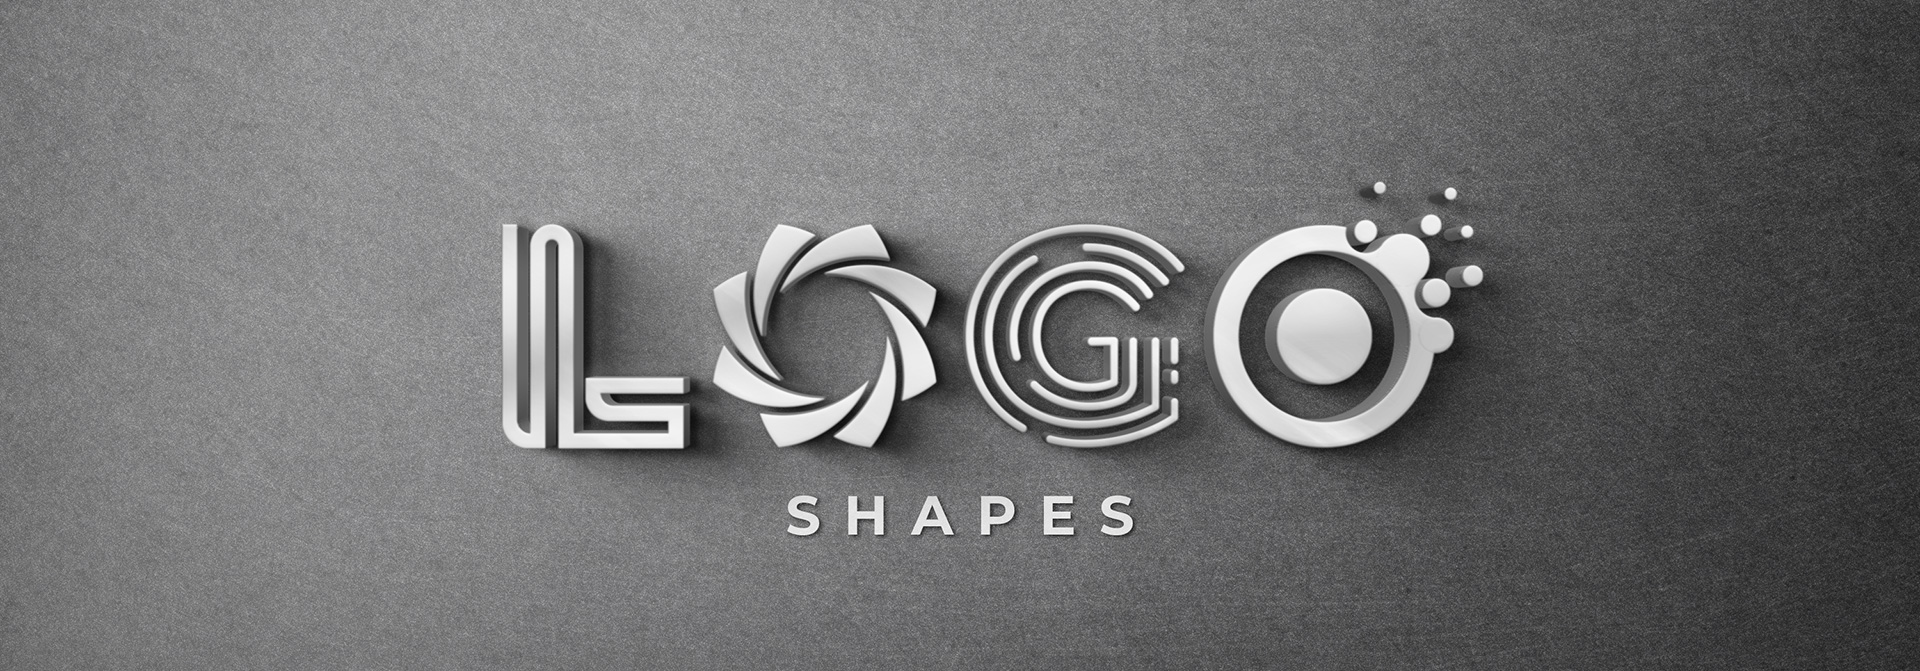 different logo shapes